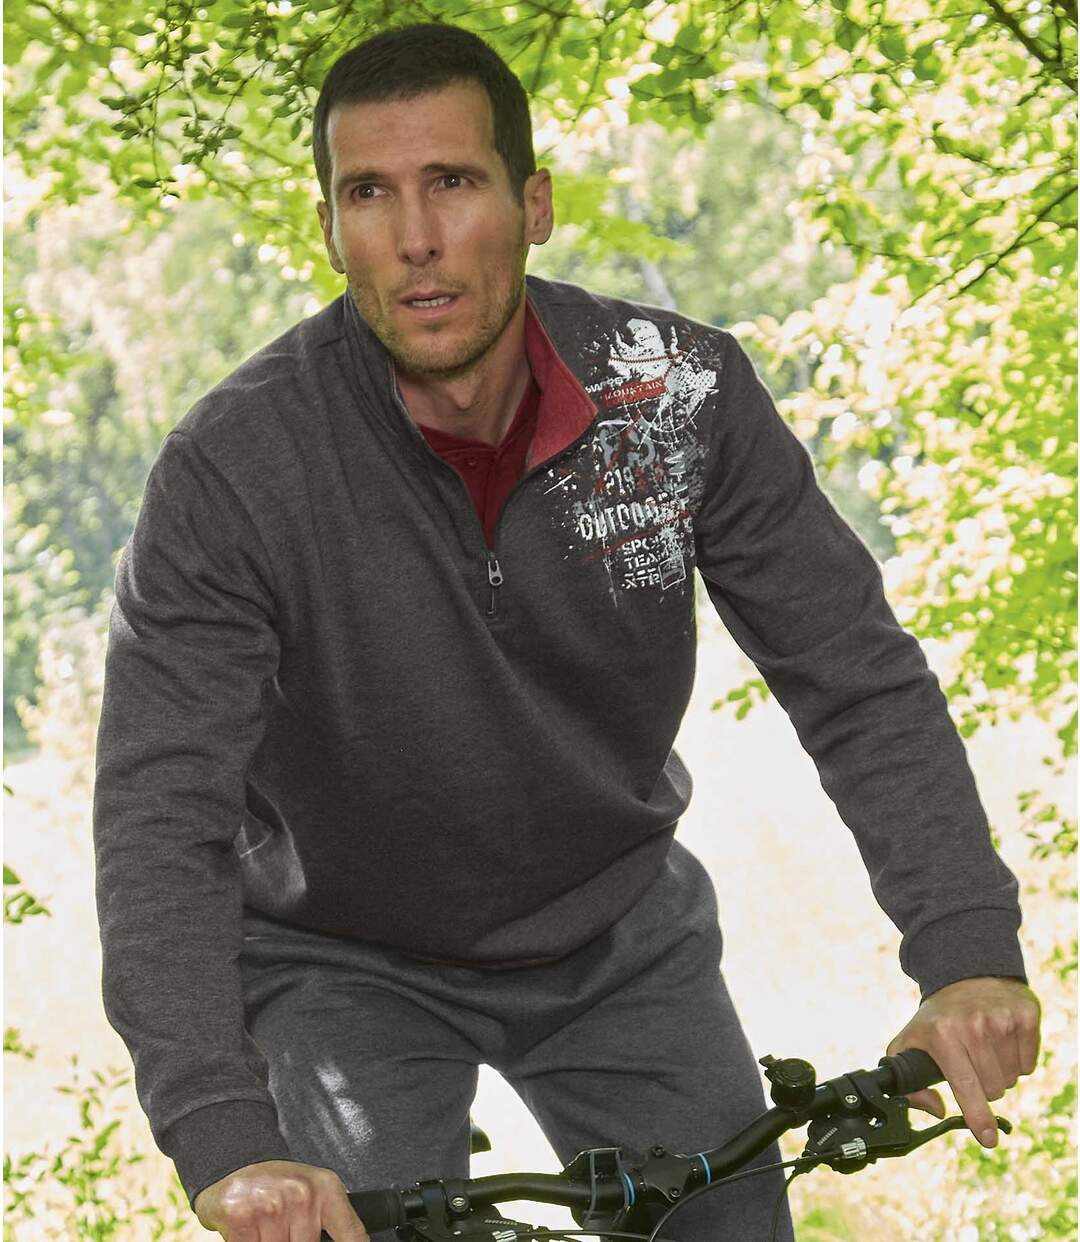 Molton sweater Outdoor Park